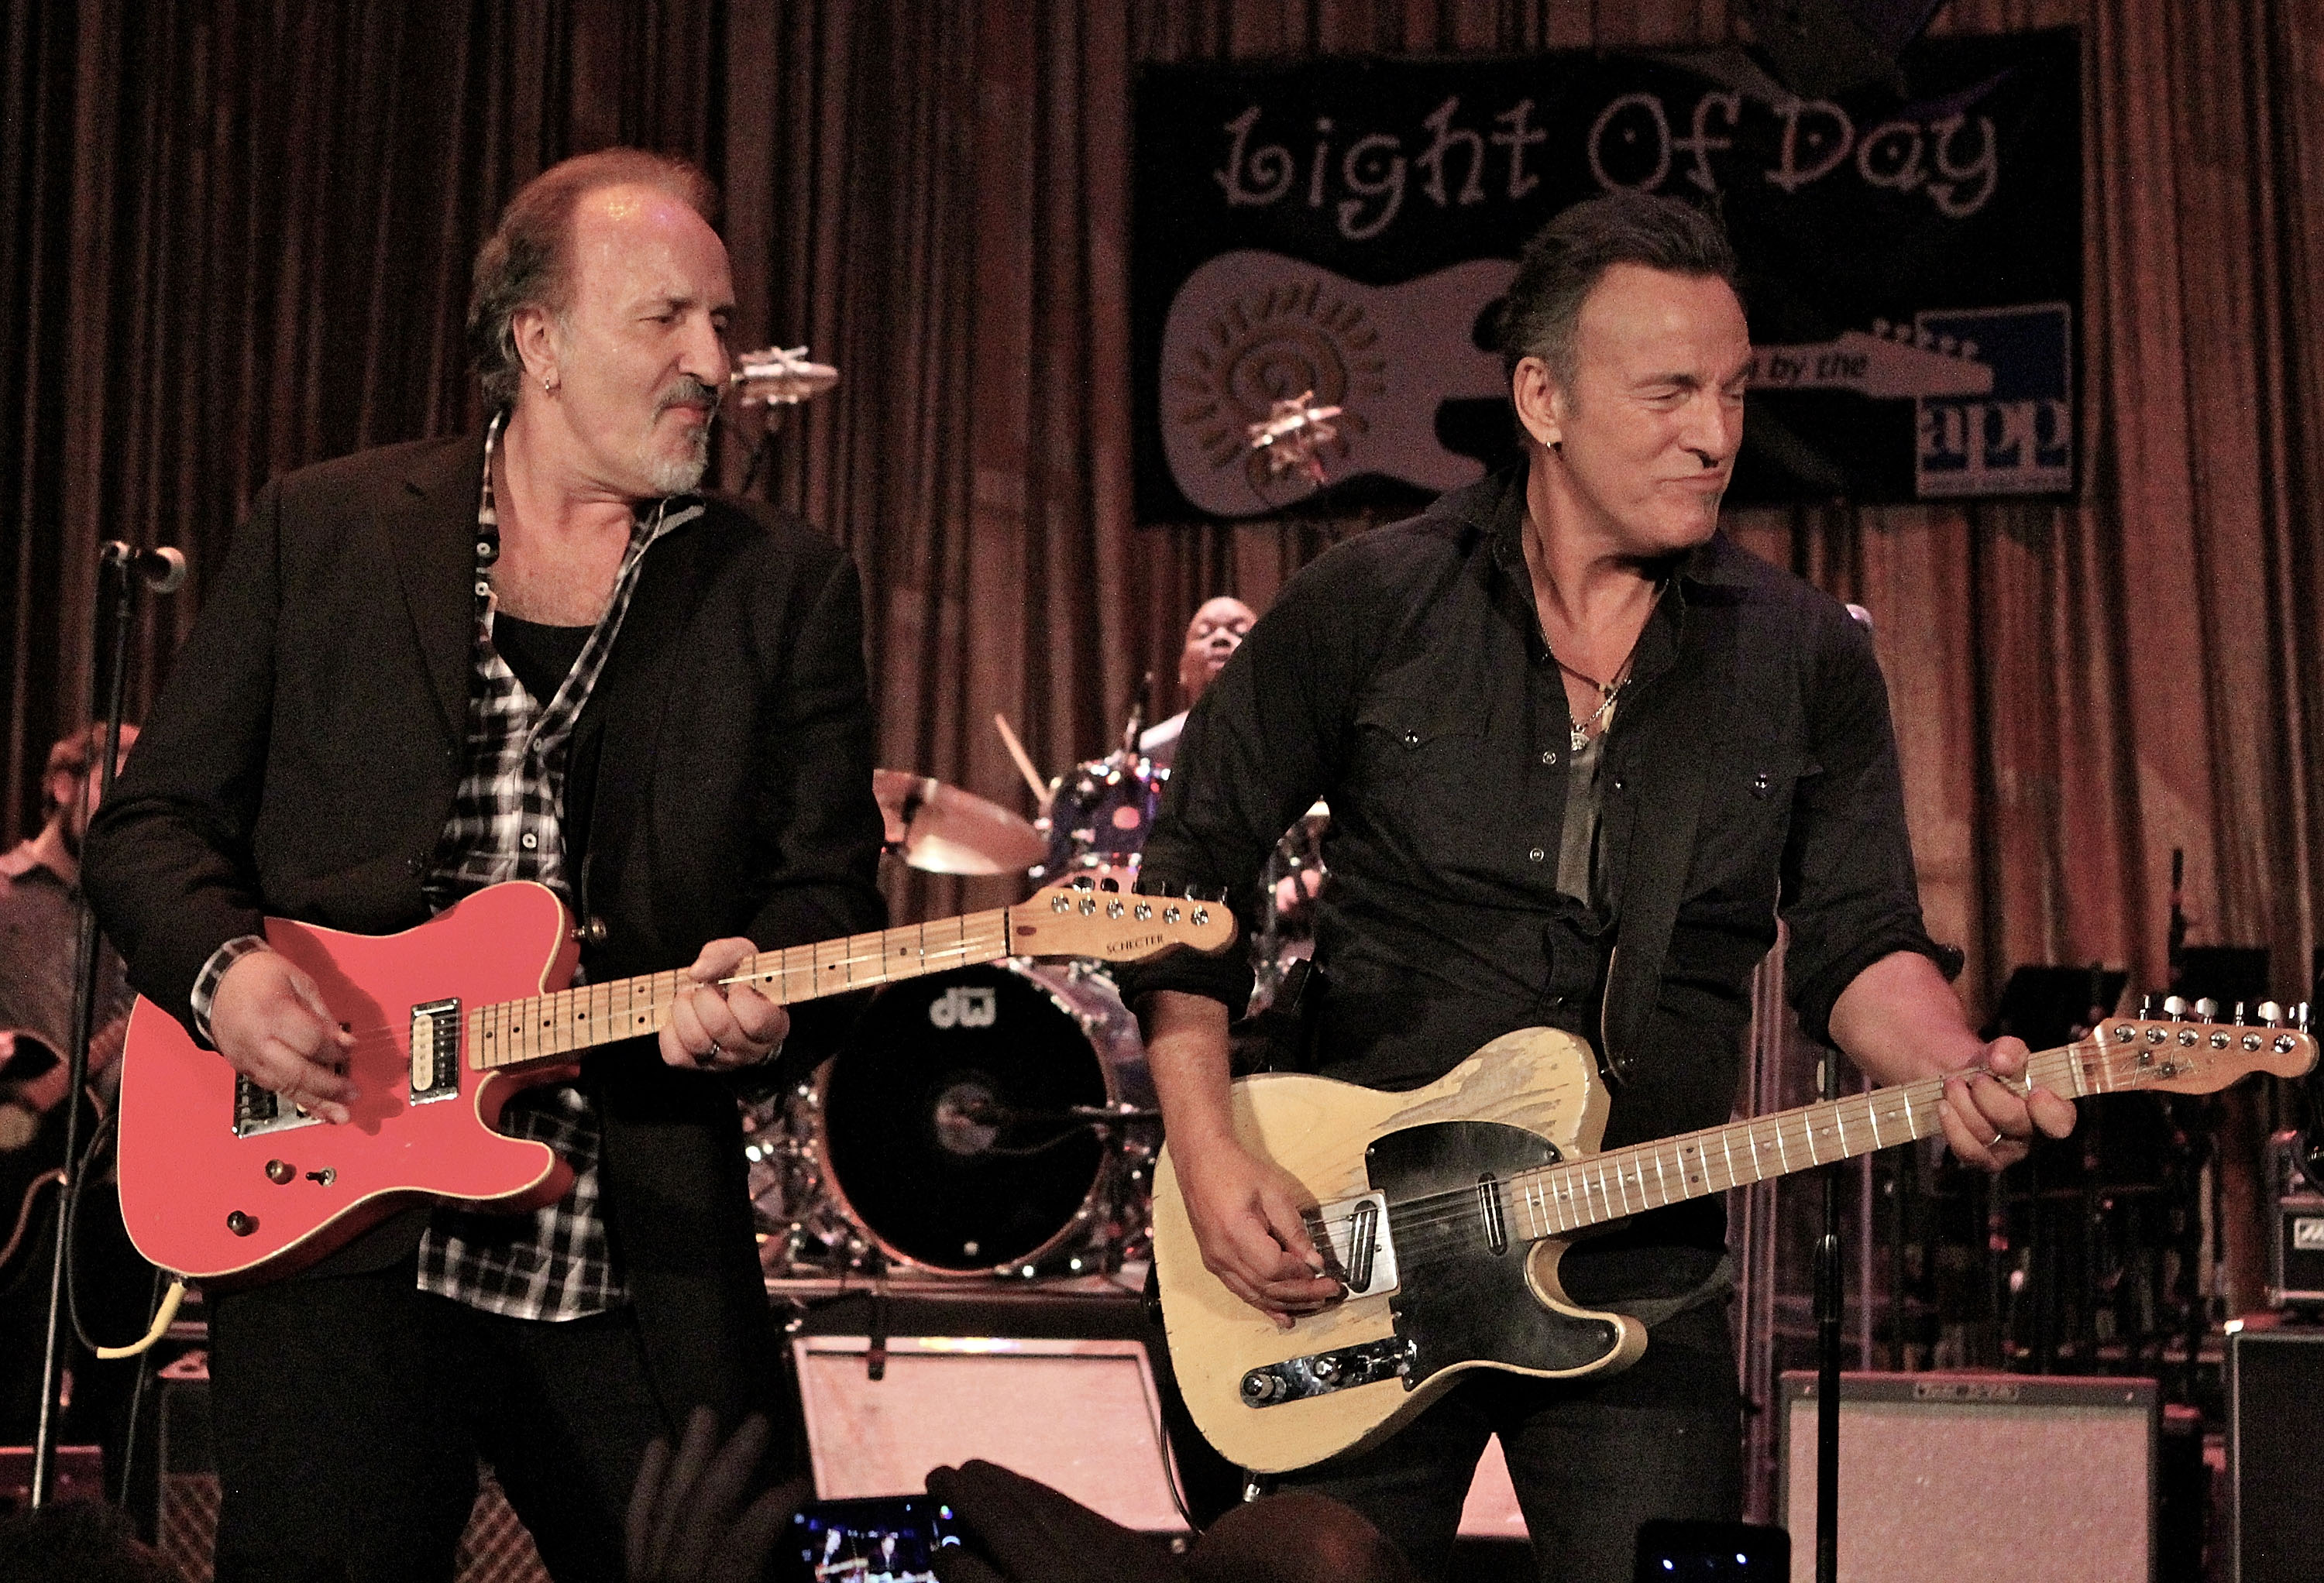 Musicians Joe Grushecky and Bruce Springsteen perform at the Light Of Day Winterfest 2015 on Jan. 17, 2015.